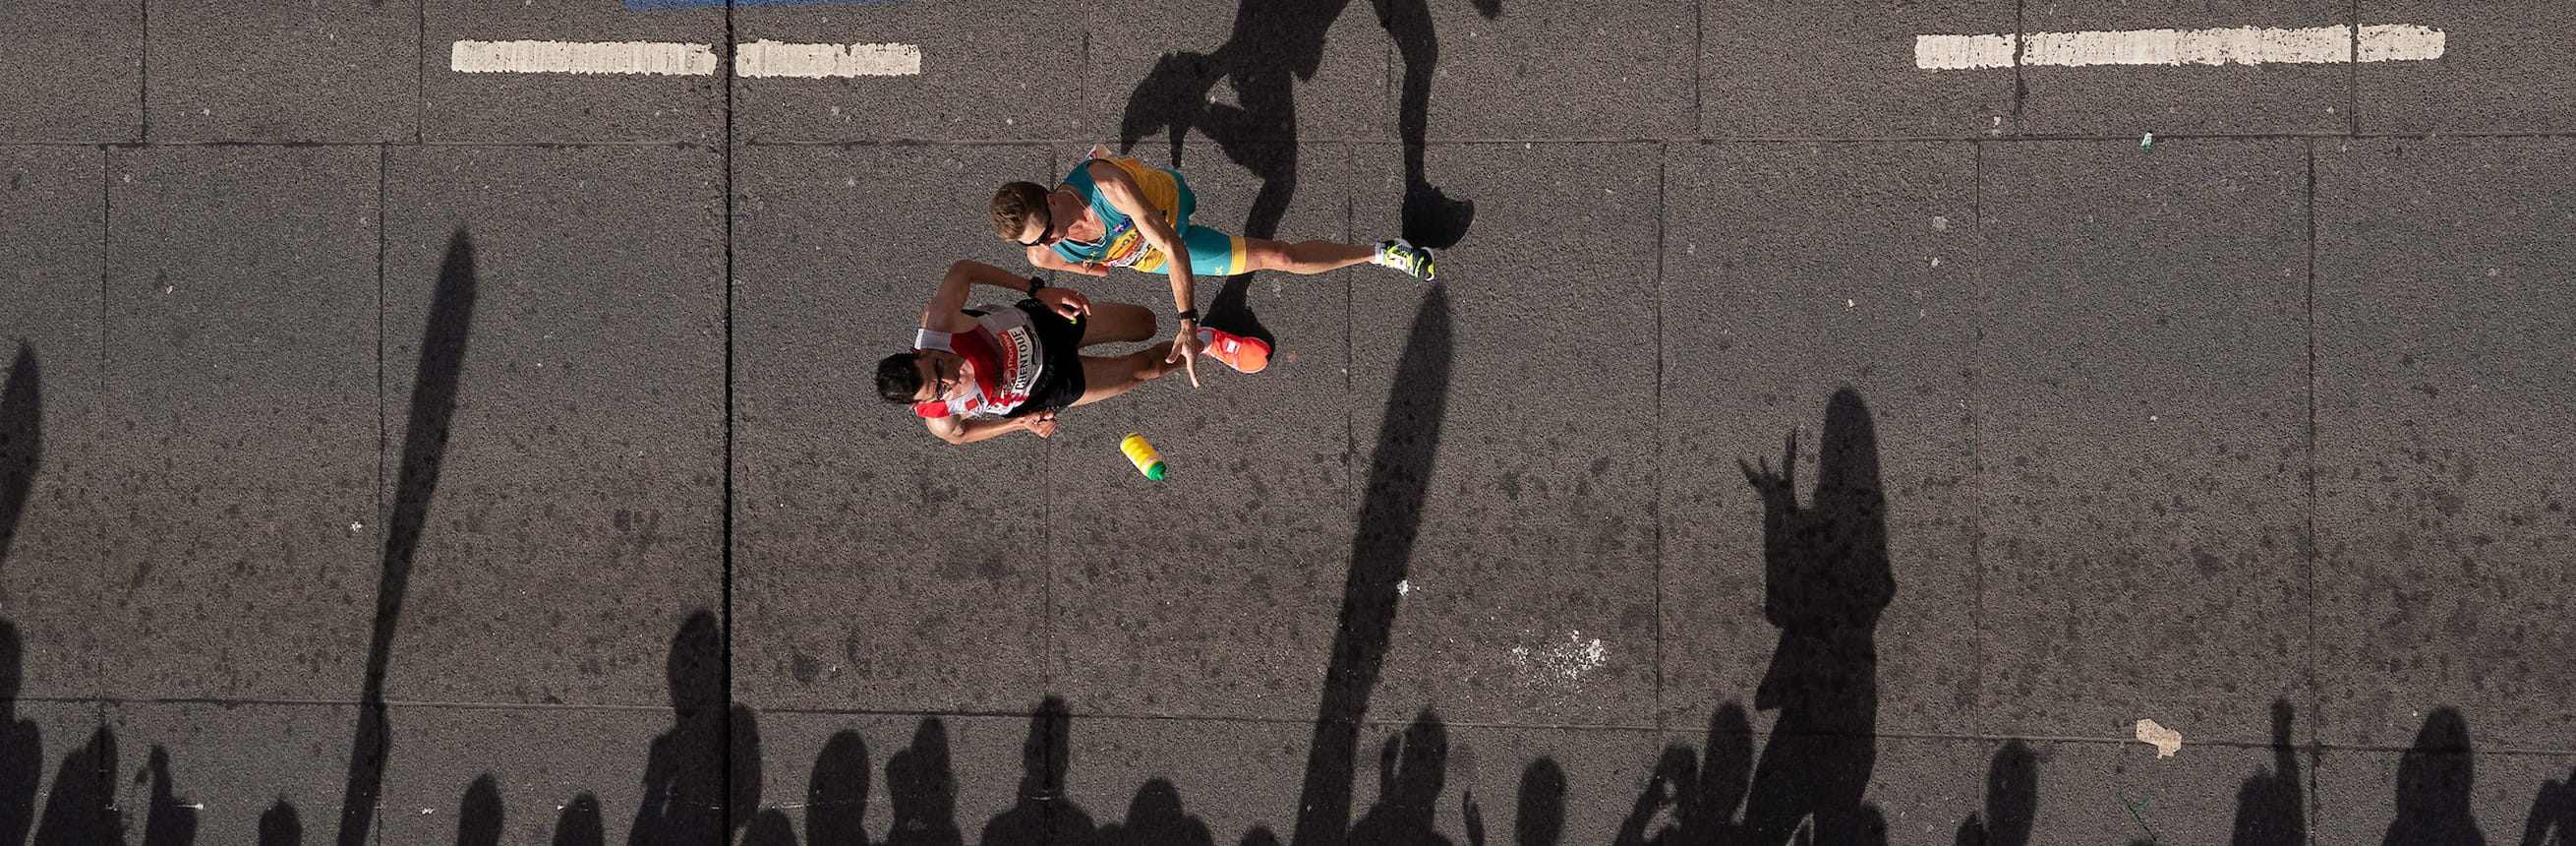 Michael Roeger AUS throws a drinks bottle to a volunteer during the T46 Men World Para Athletics Marathon Championships